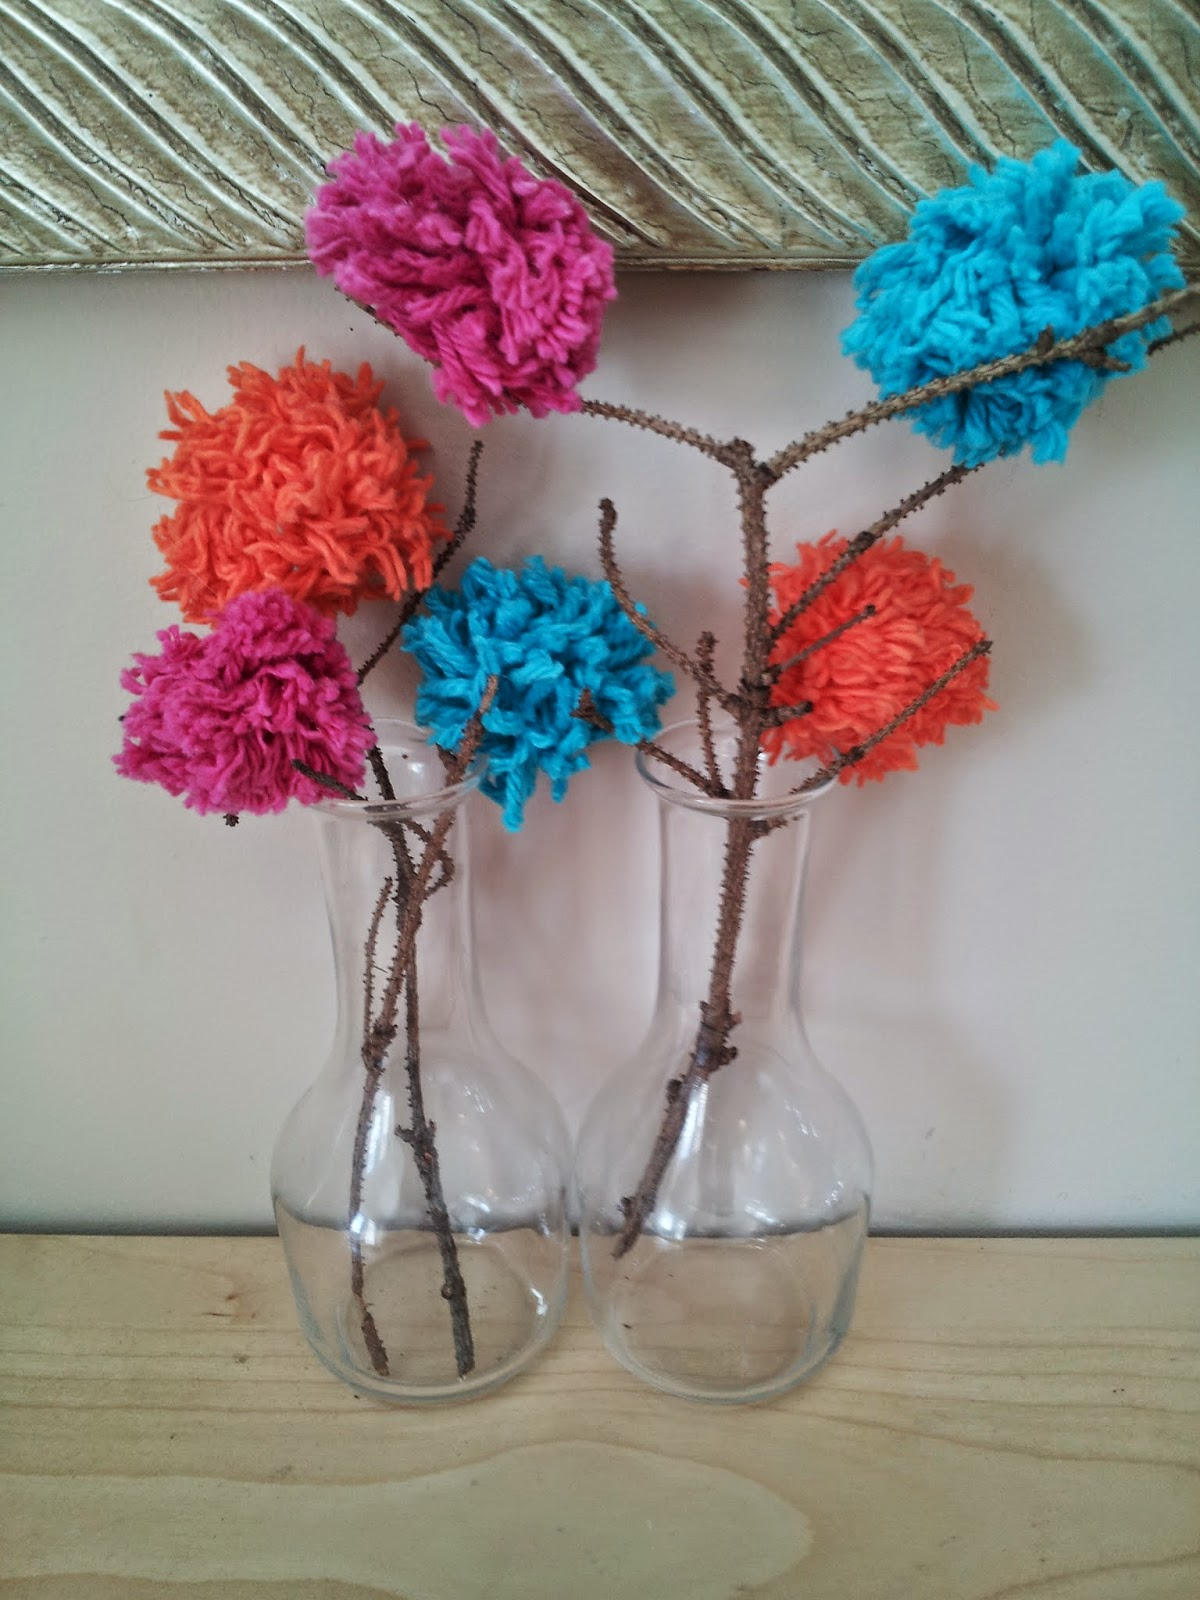 Pom-Pom flower craft, wool pom-poms, kids crafts, spring craft